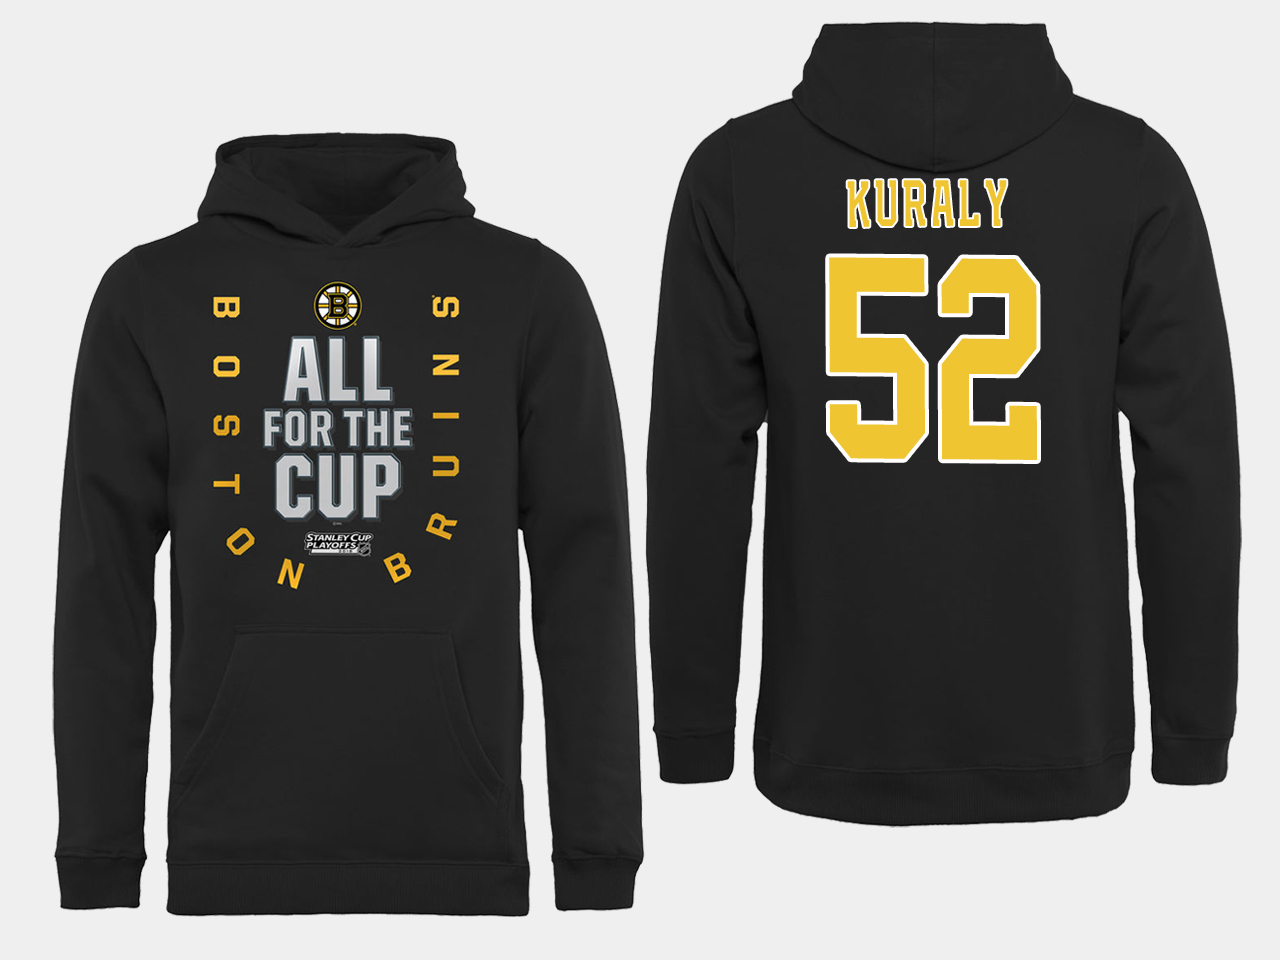 NHL Men Boston Bruins 52 Kuraly Black All for the Cup Hoodie